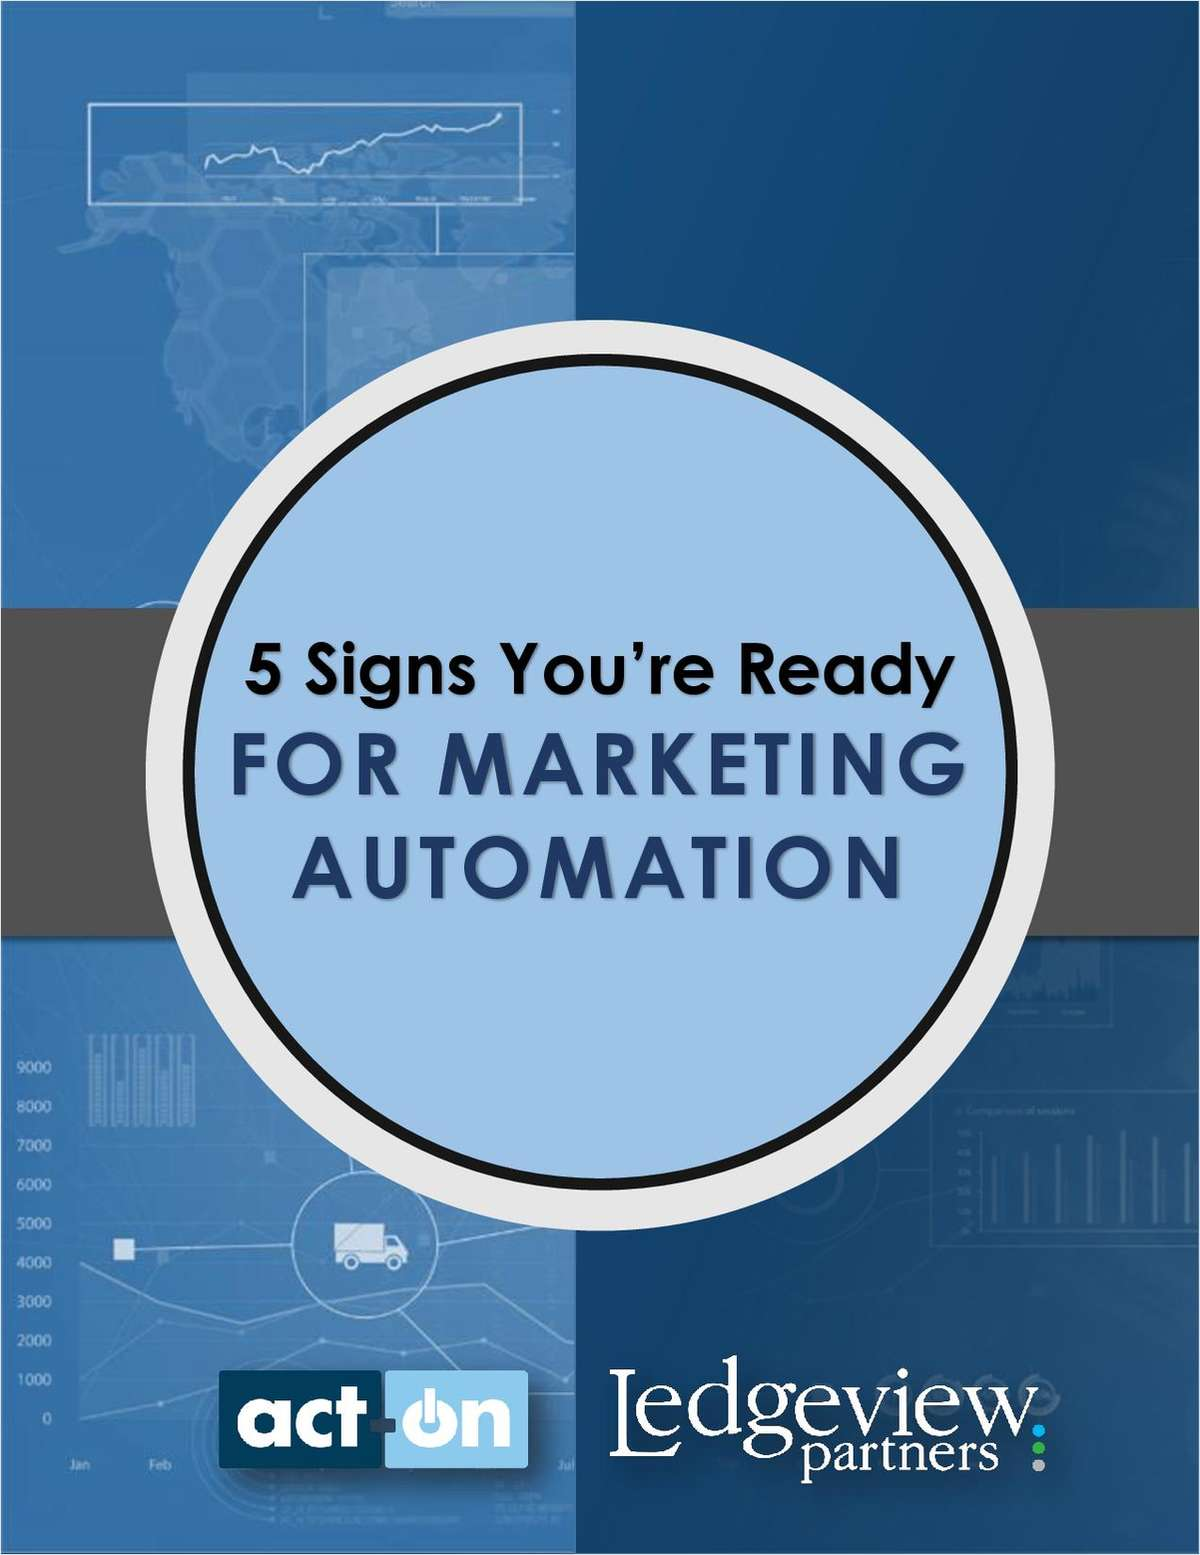 5 Signs That You're Ready for Marketing Automation